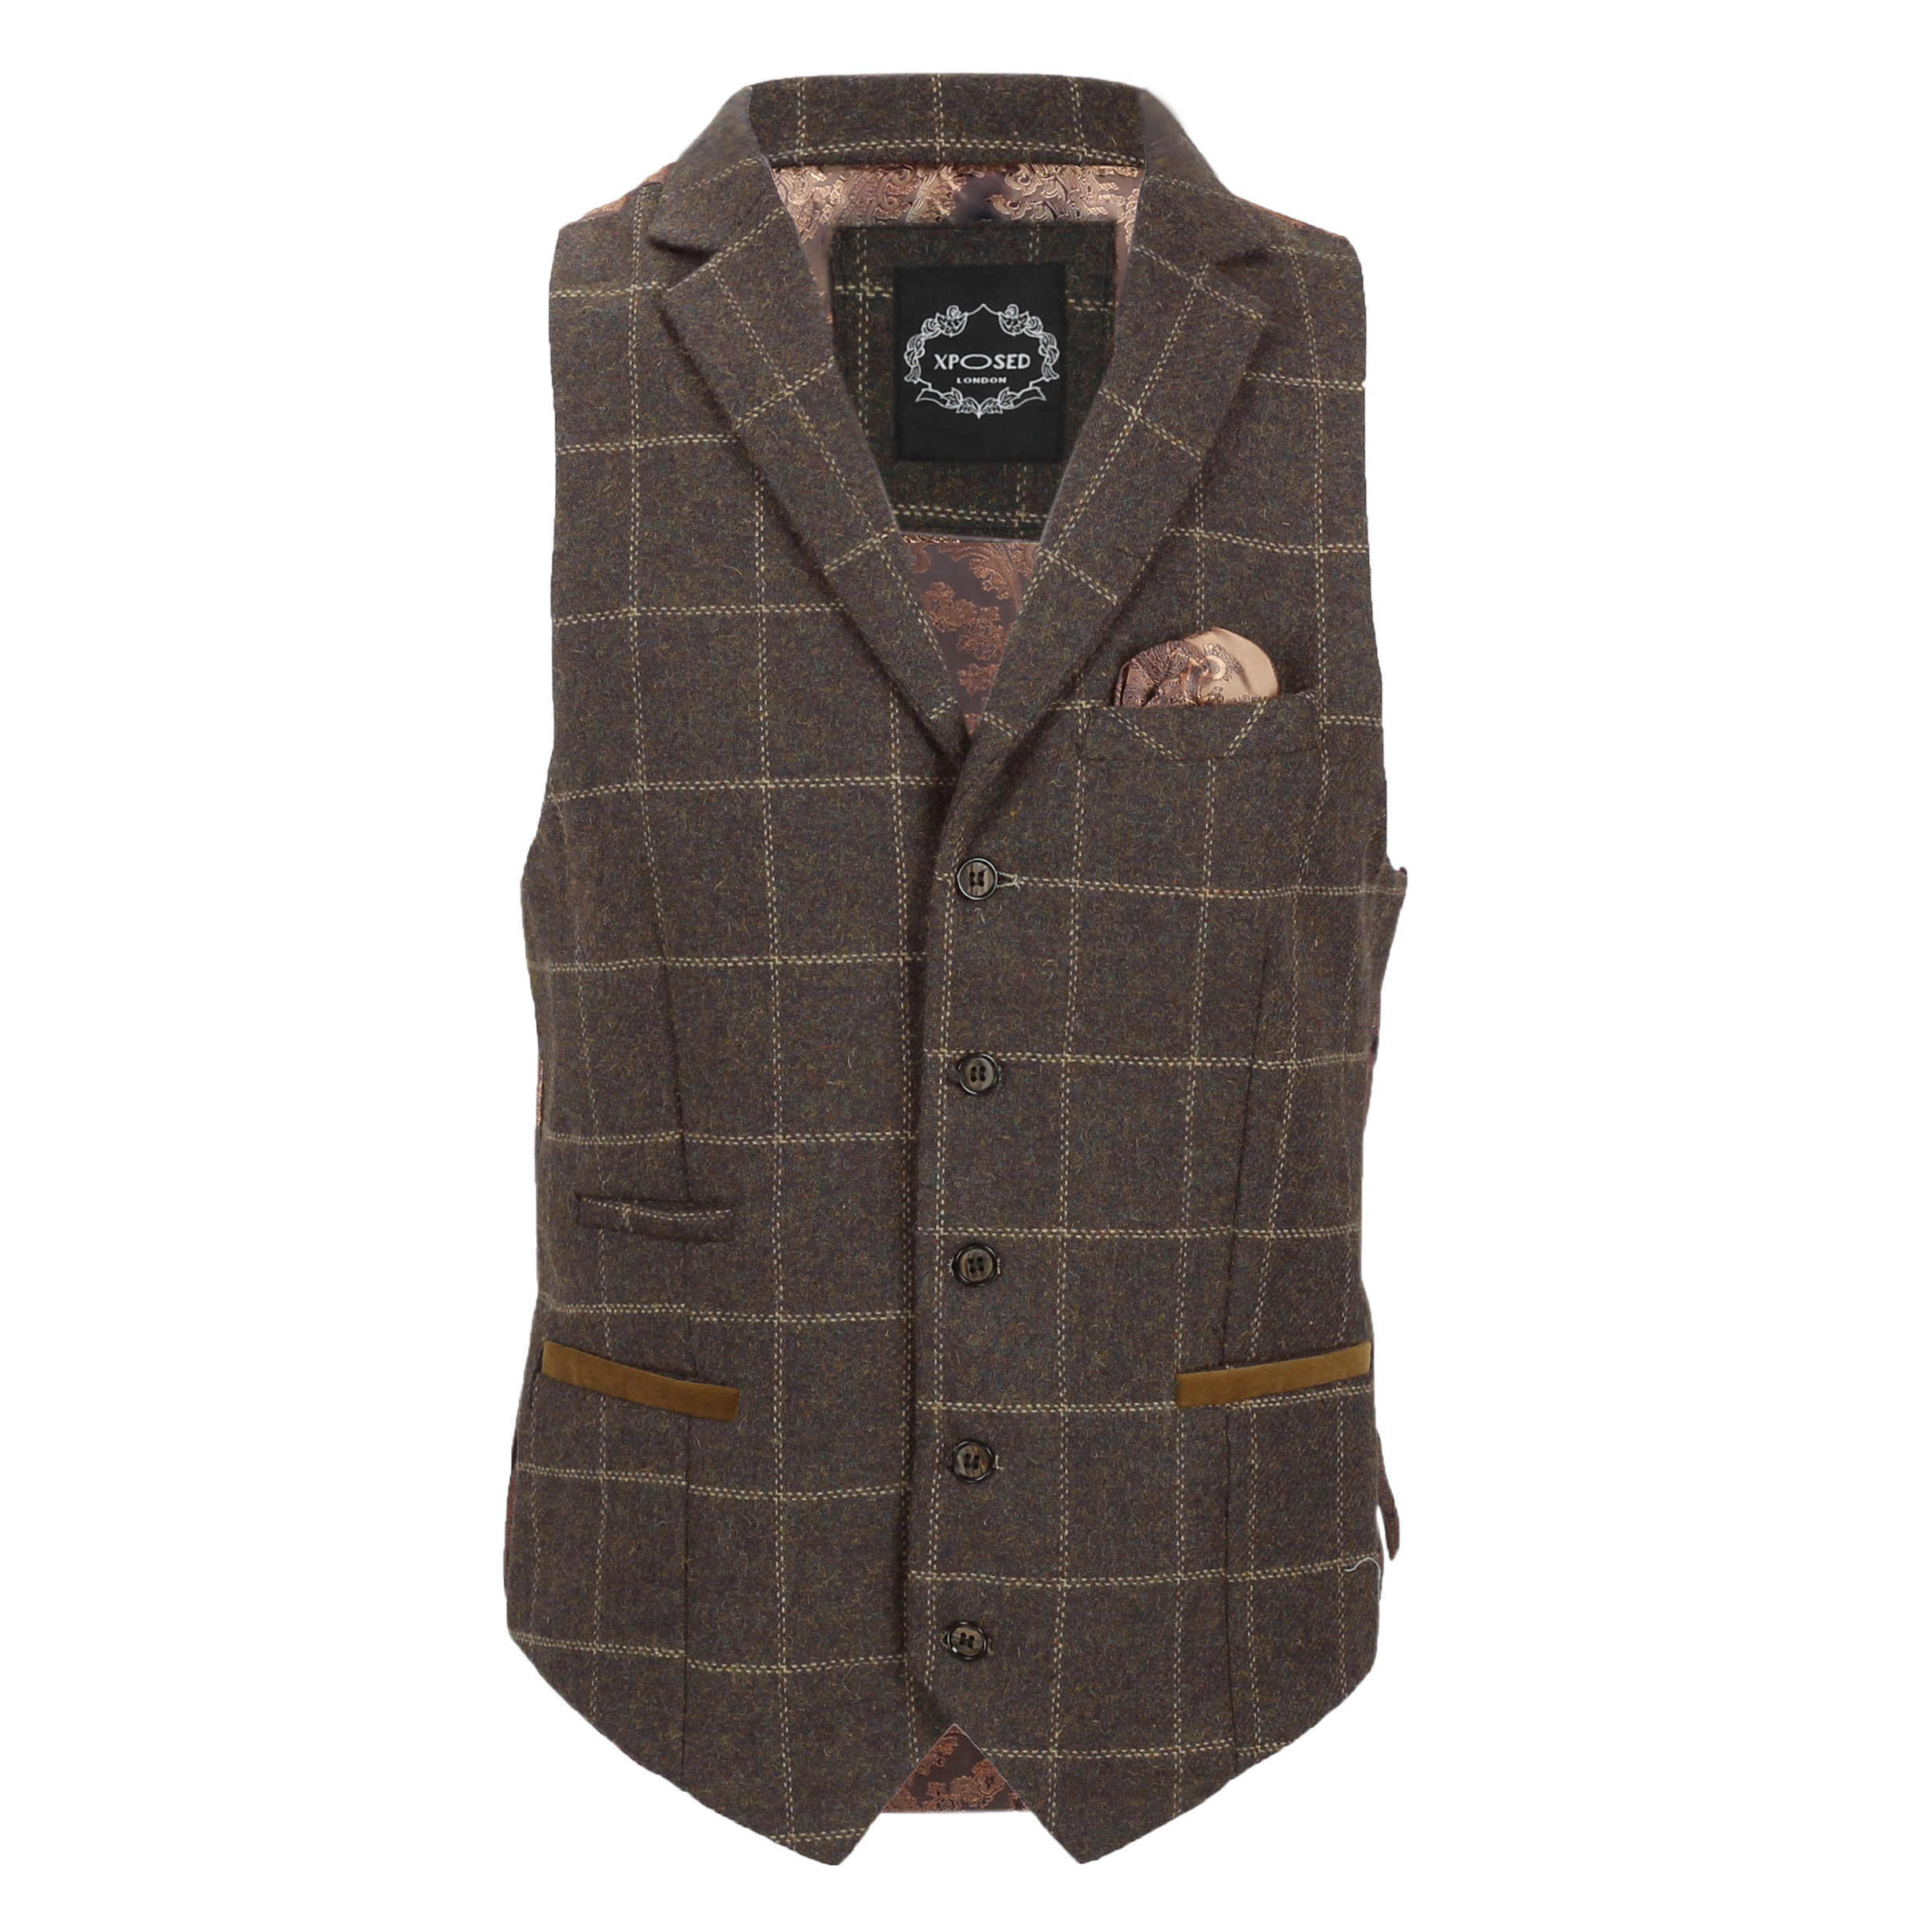 Mens-Tweed-Check-Waistcoat-Vintage-Herringbone-VelvetCollar-Lapel-Slim-Fit-Vest thumbnail 7